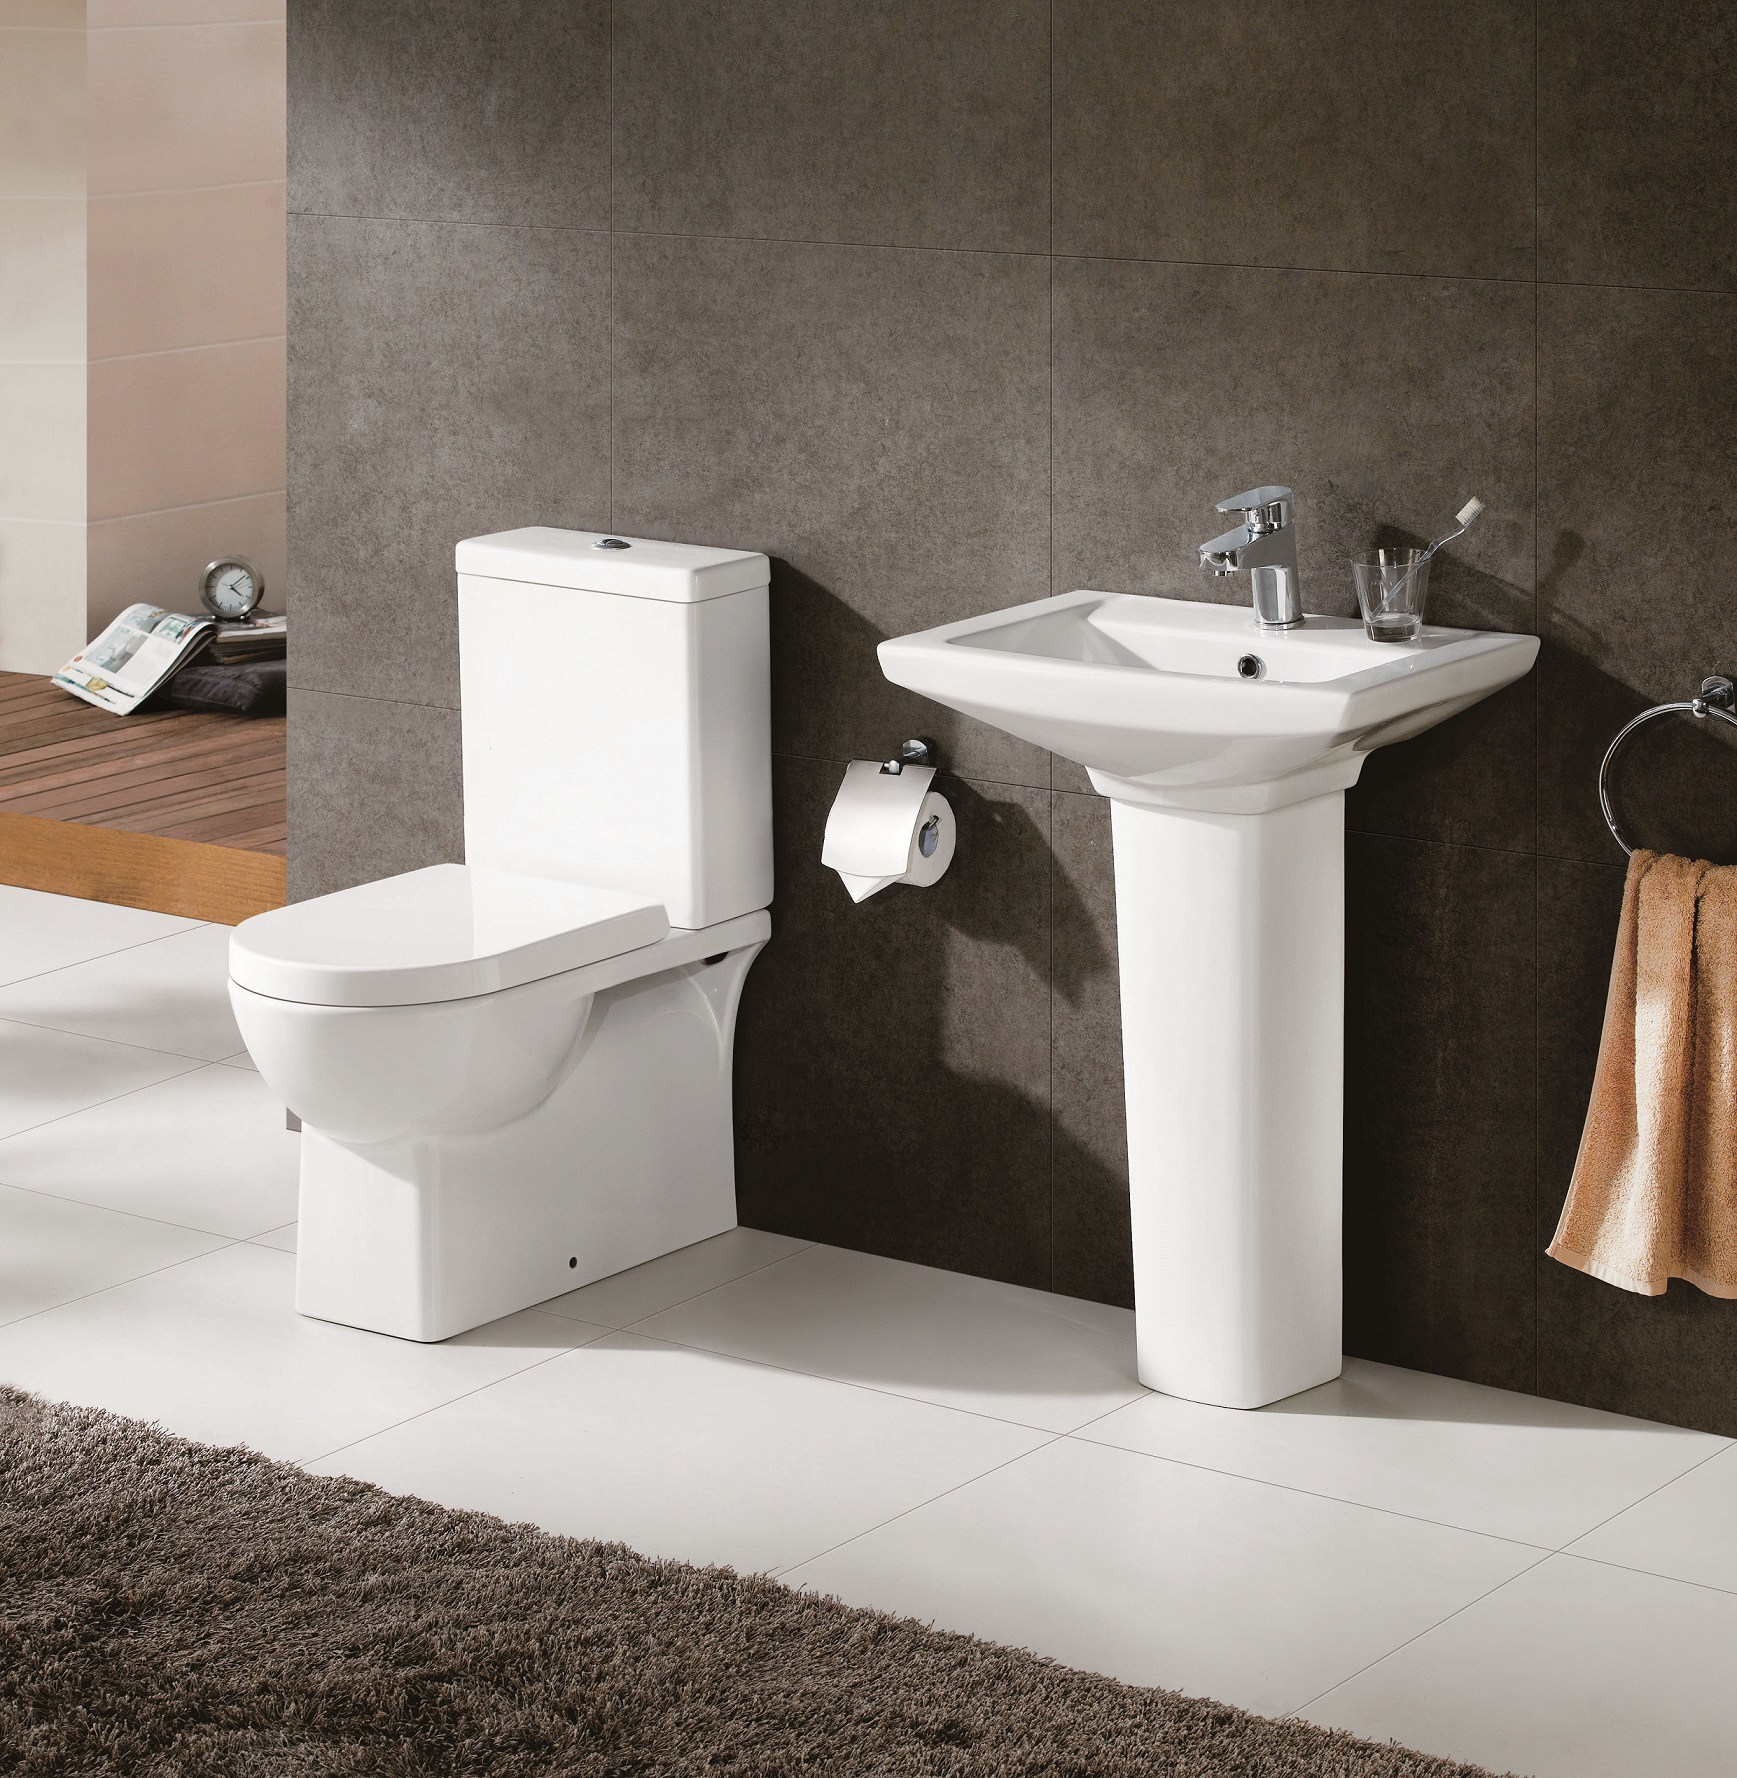 Kirby Sebastian launches contemporary new bathroom suite   Toyko Suite smaller